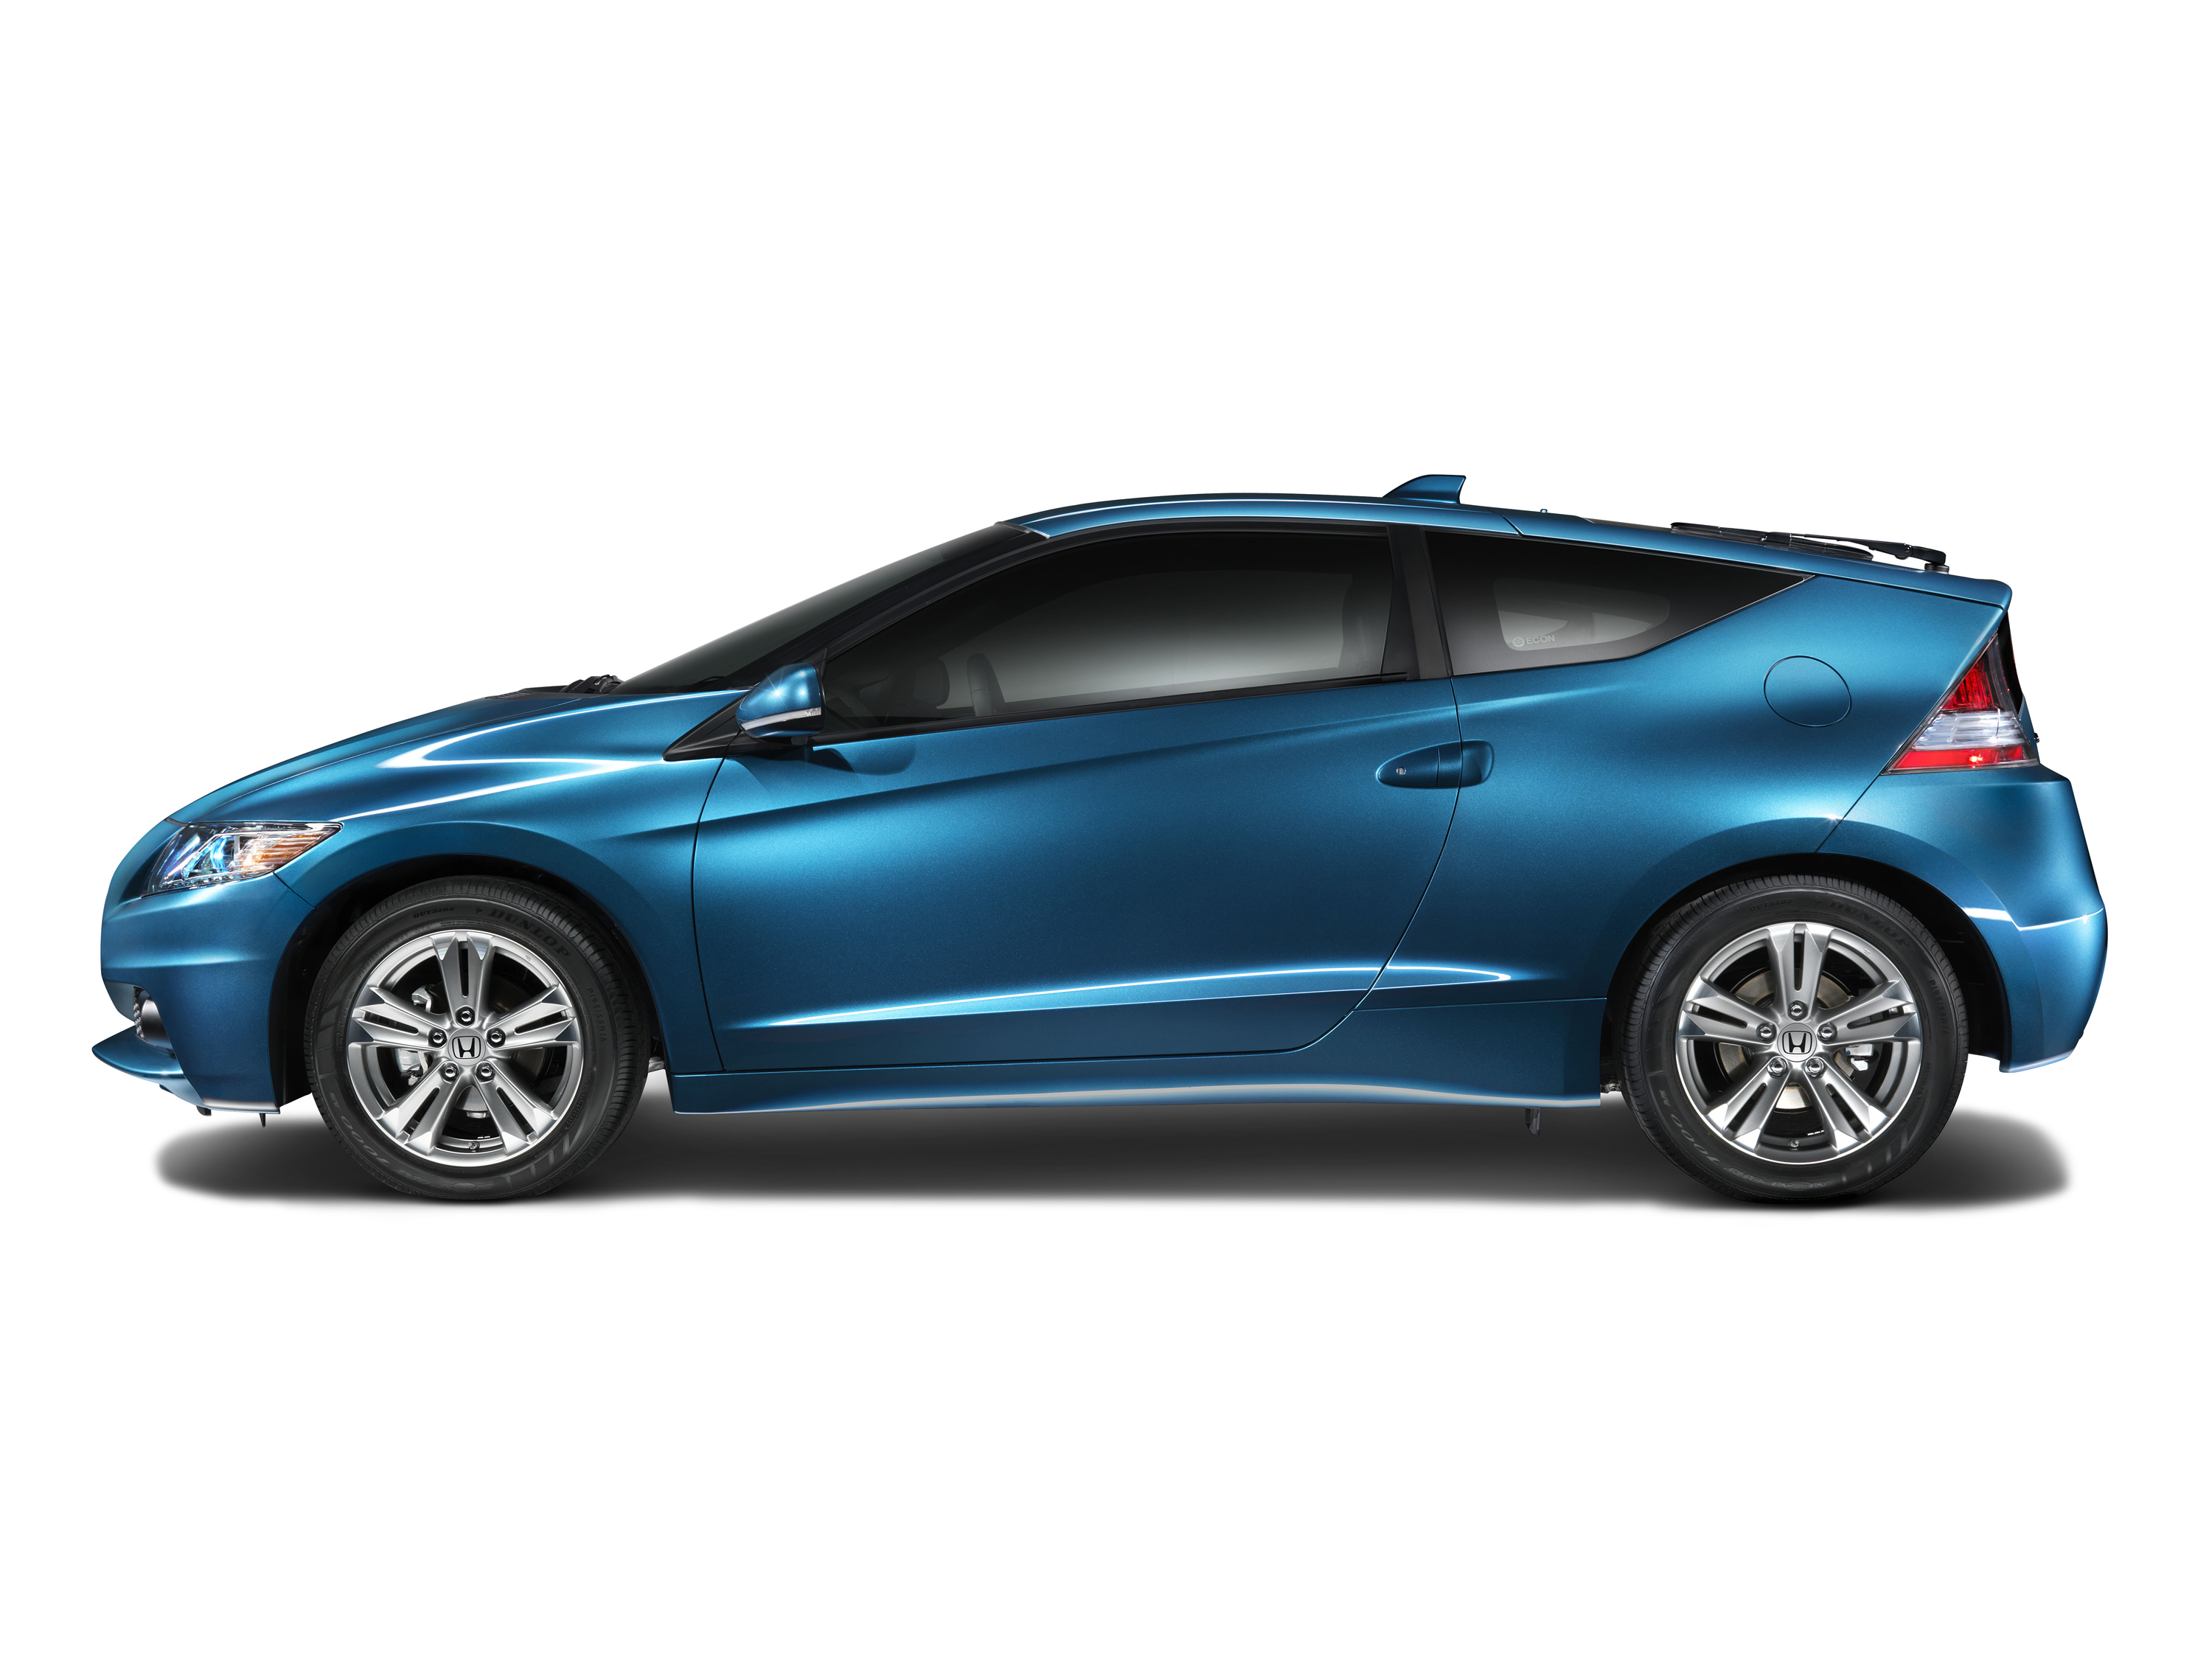 2015 honda cr z detailed price hikes 150 over the 2014 model year autoevolution. Black Bedroom Furniture Sets. Home Design Ideas